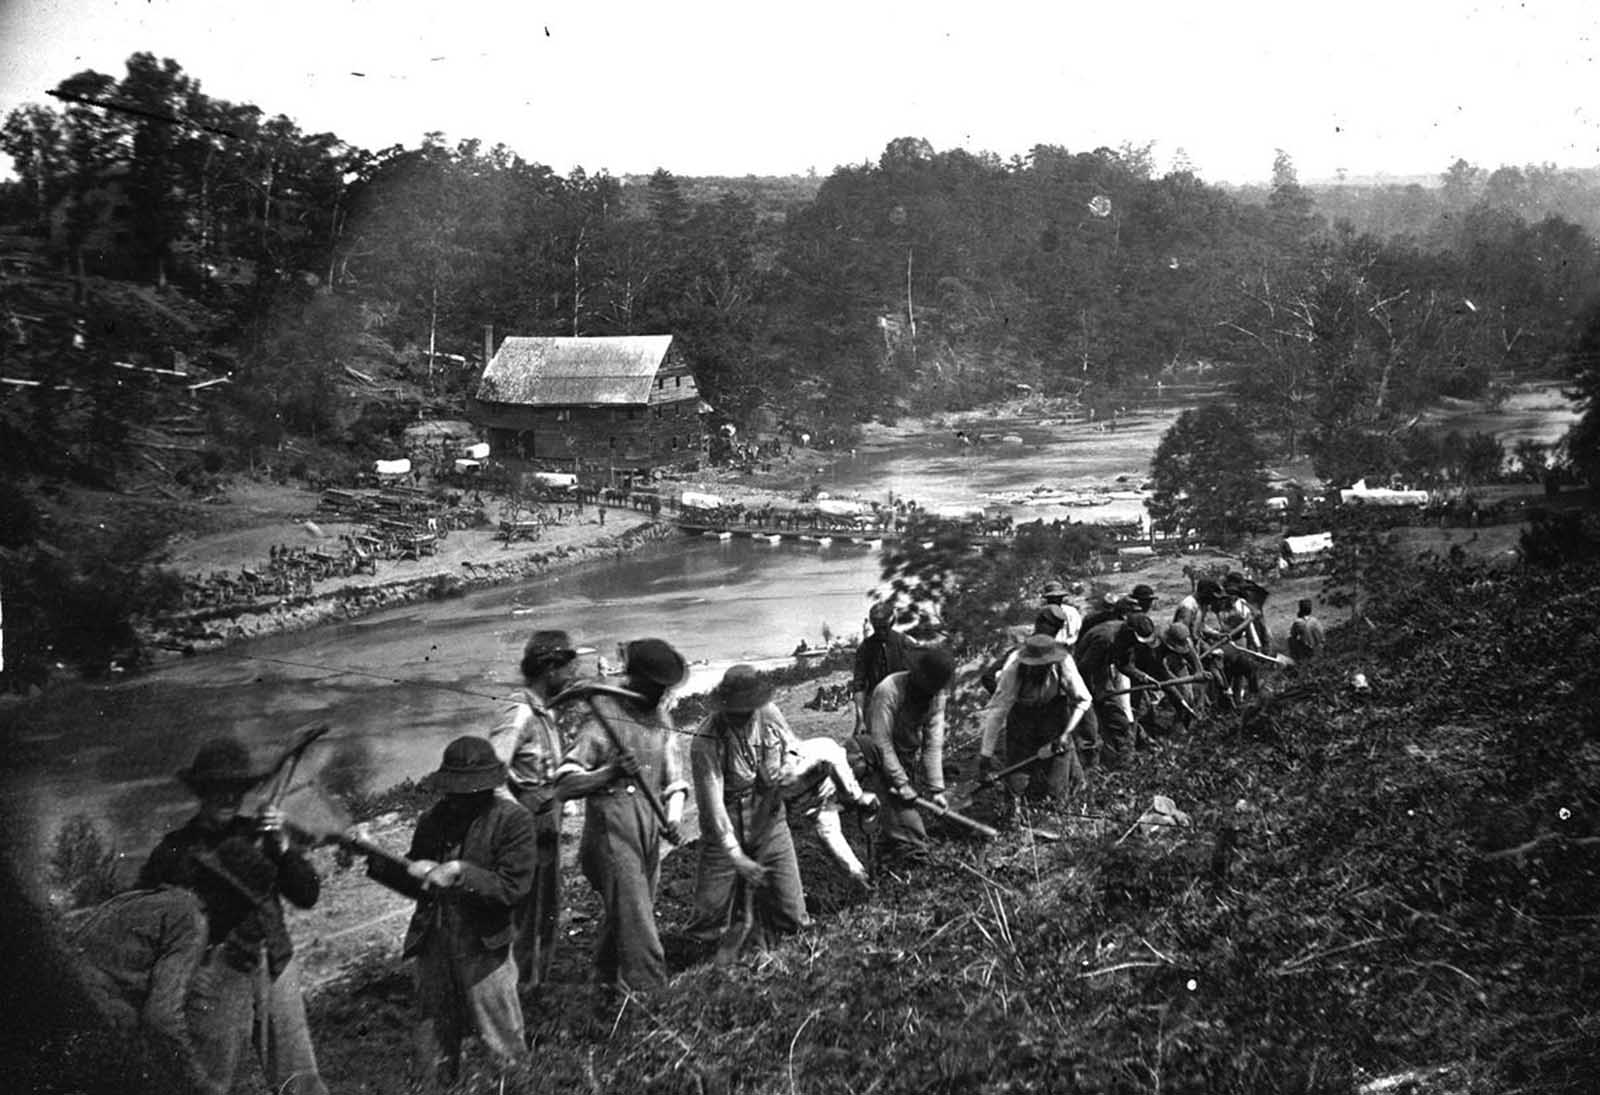 A party of the 50th New York Engineers builds a road on the south bank of the North Anna River, near Jericho Mills, Virginia, on May 24, 1864.